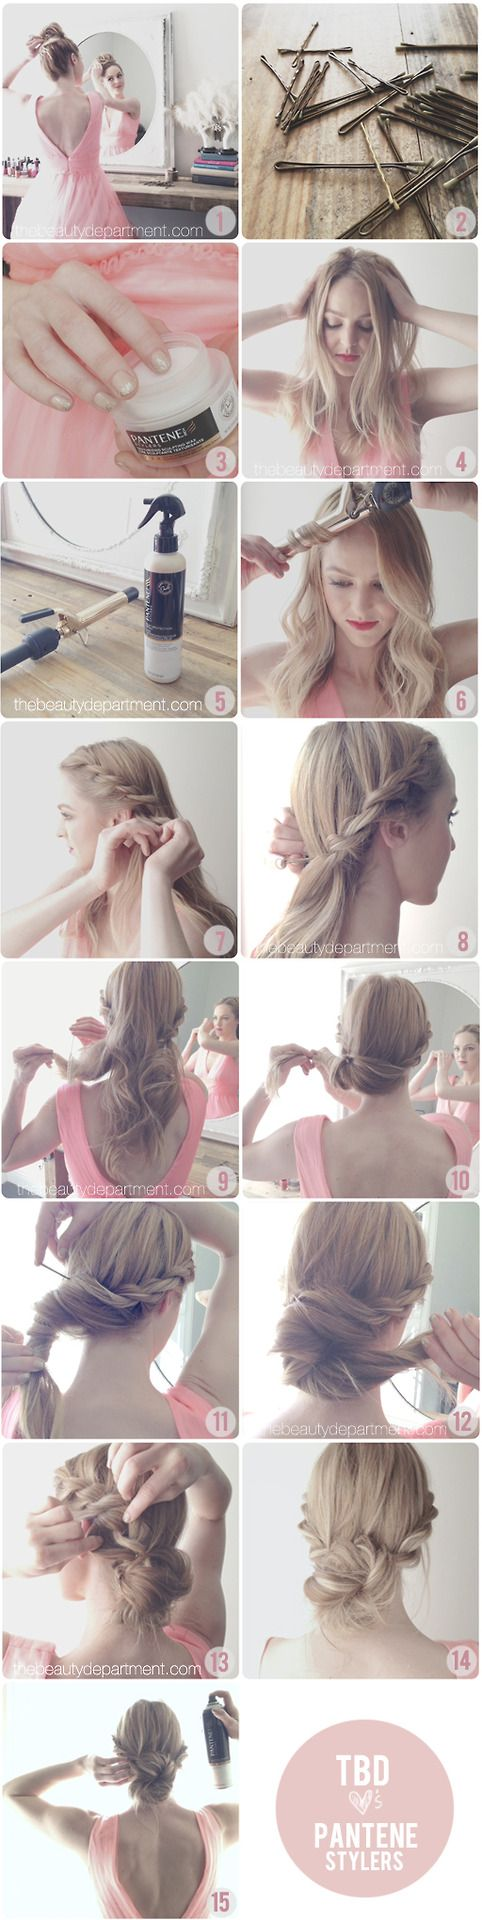 modcloth: This chignon tutorial from the beauty department is great for prom, wedding, or any other formal event. I love the loose look of this hairstyle, and it's super easy to create! <3 Amy, ModStylist Need styling suggestions, trend tips, or dress details?Ask a ModStylistand your question might be featured on our feed!